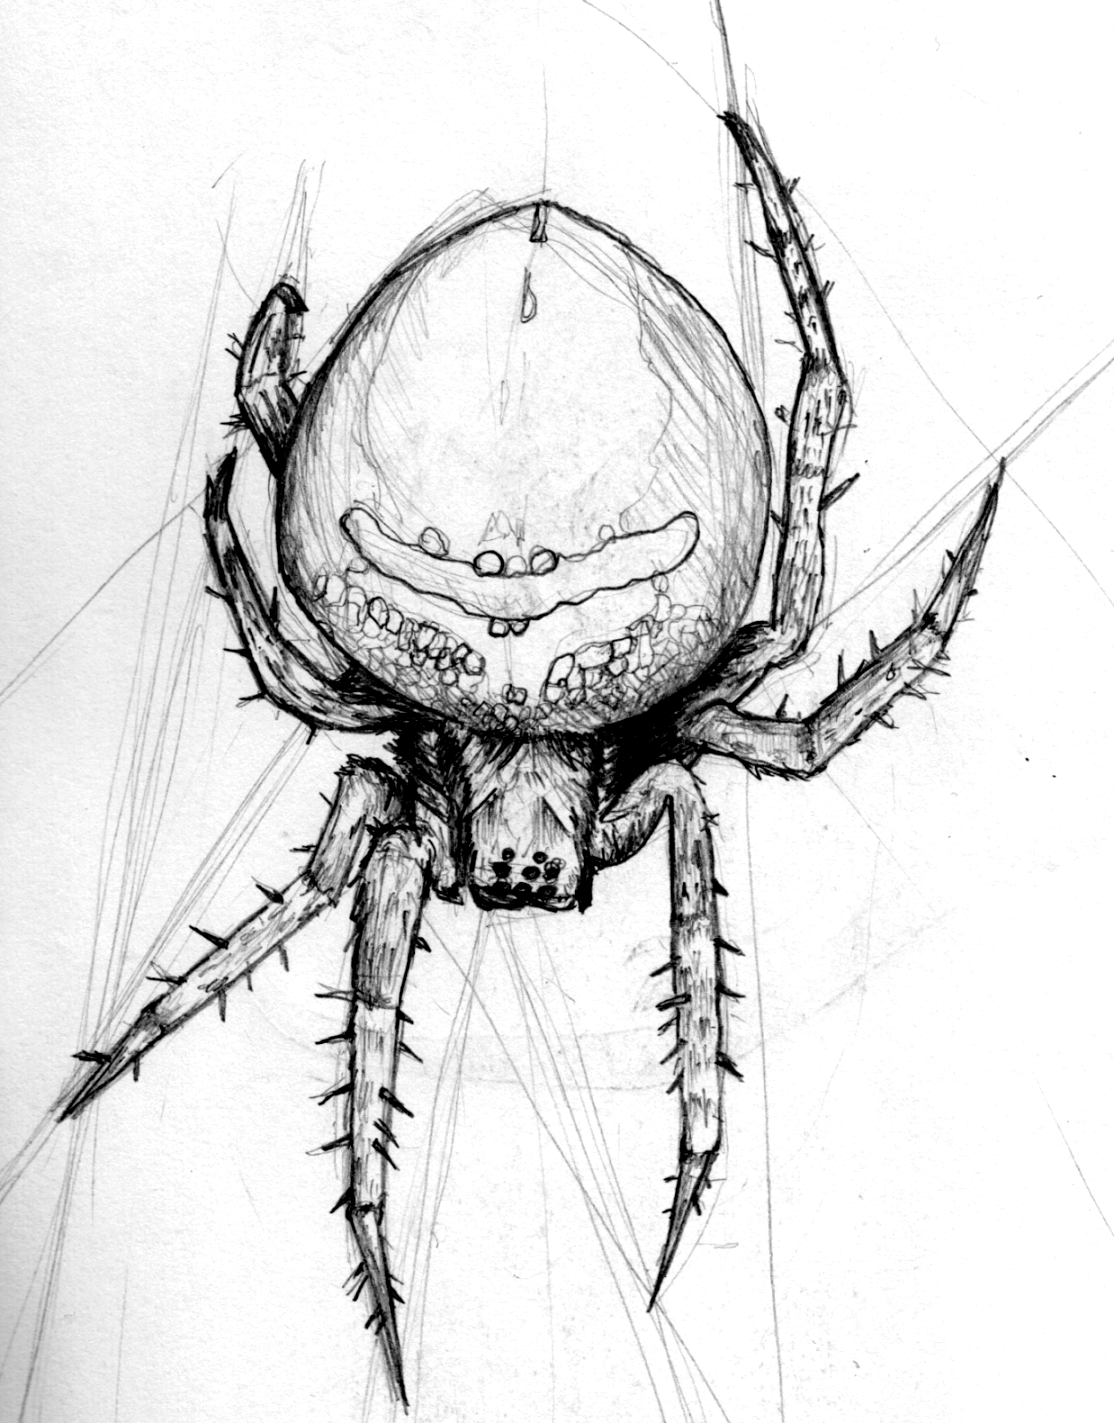 Drawn pencil funny On by sketch Spider GogglesOfEscape